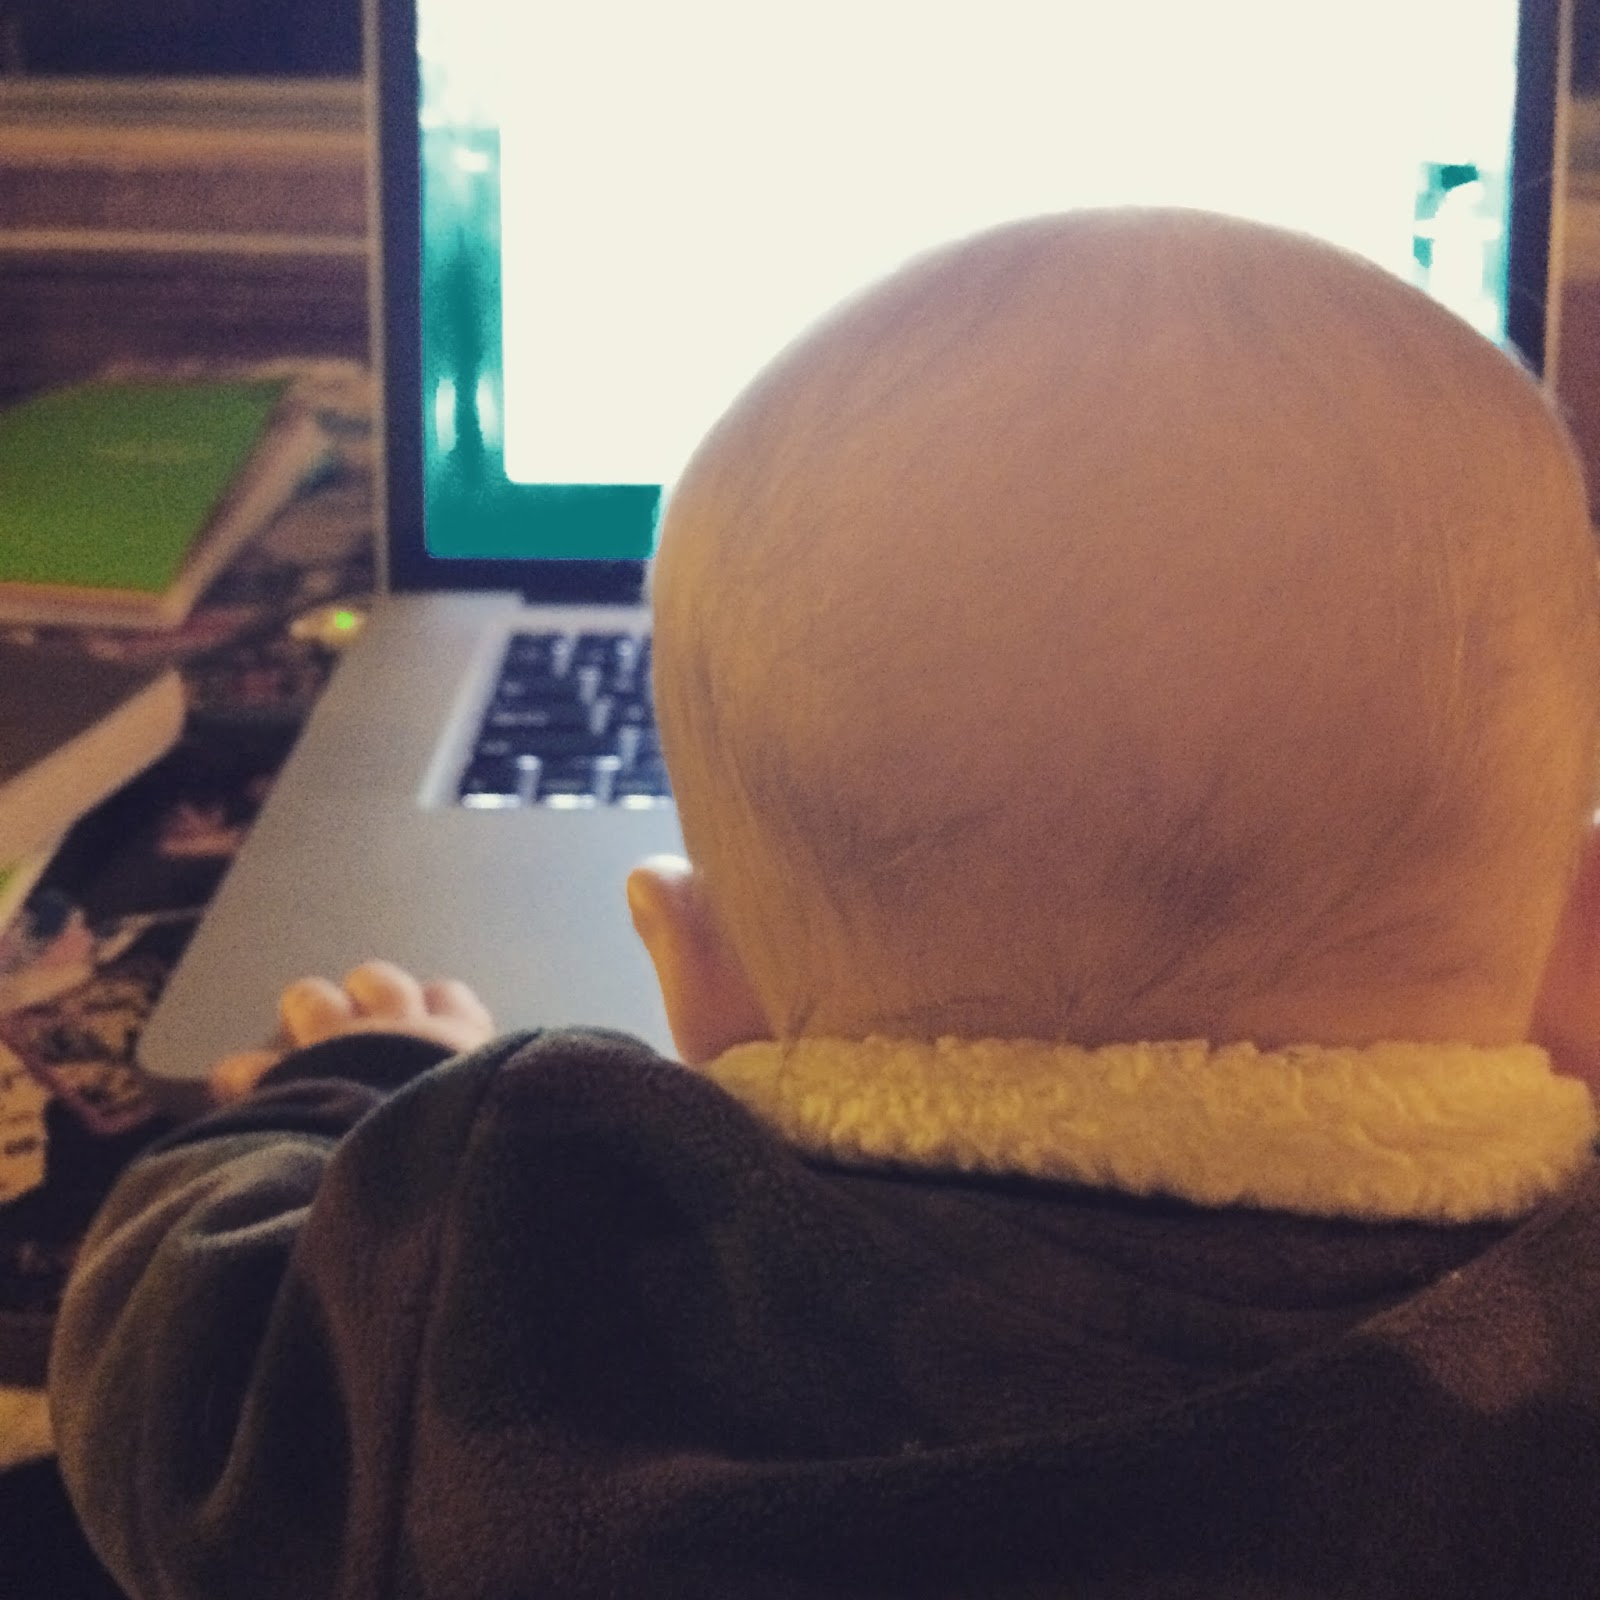 MacBooks are so awesome, even babies can use them.